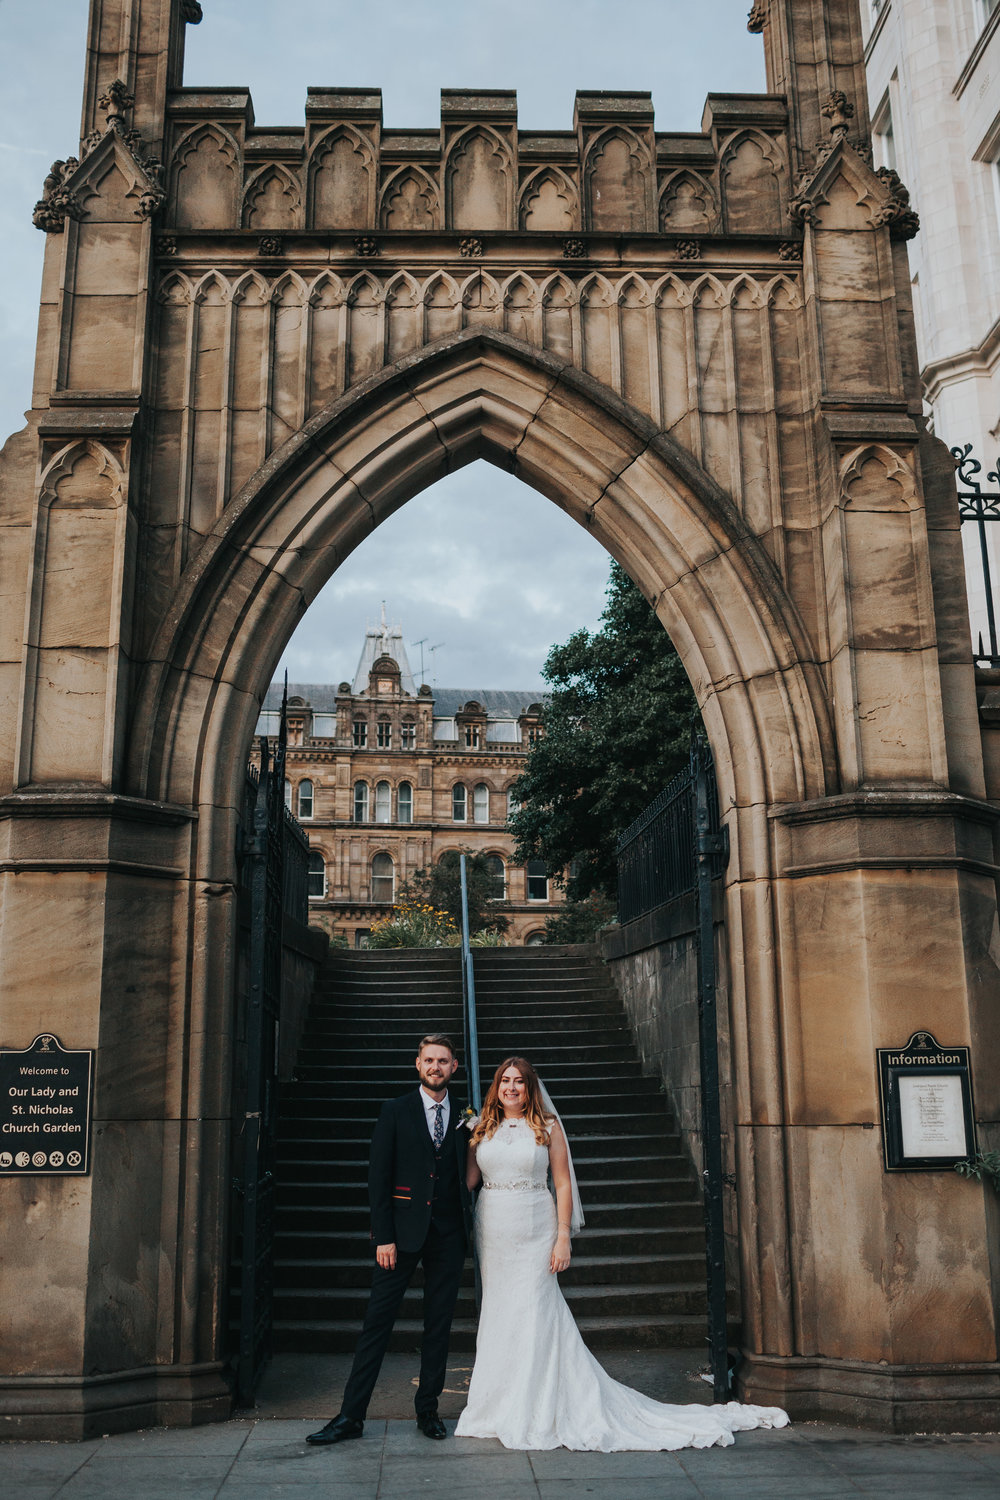 Bride and Groom stand together under grand archway, Liverpool.